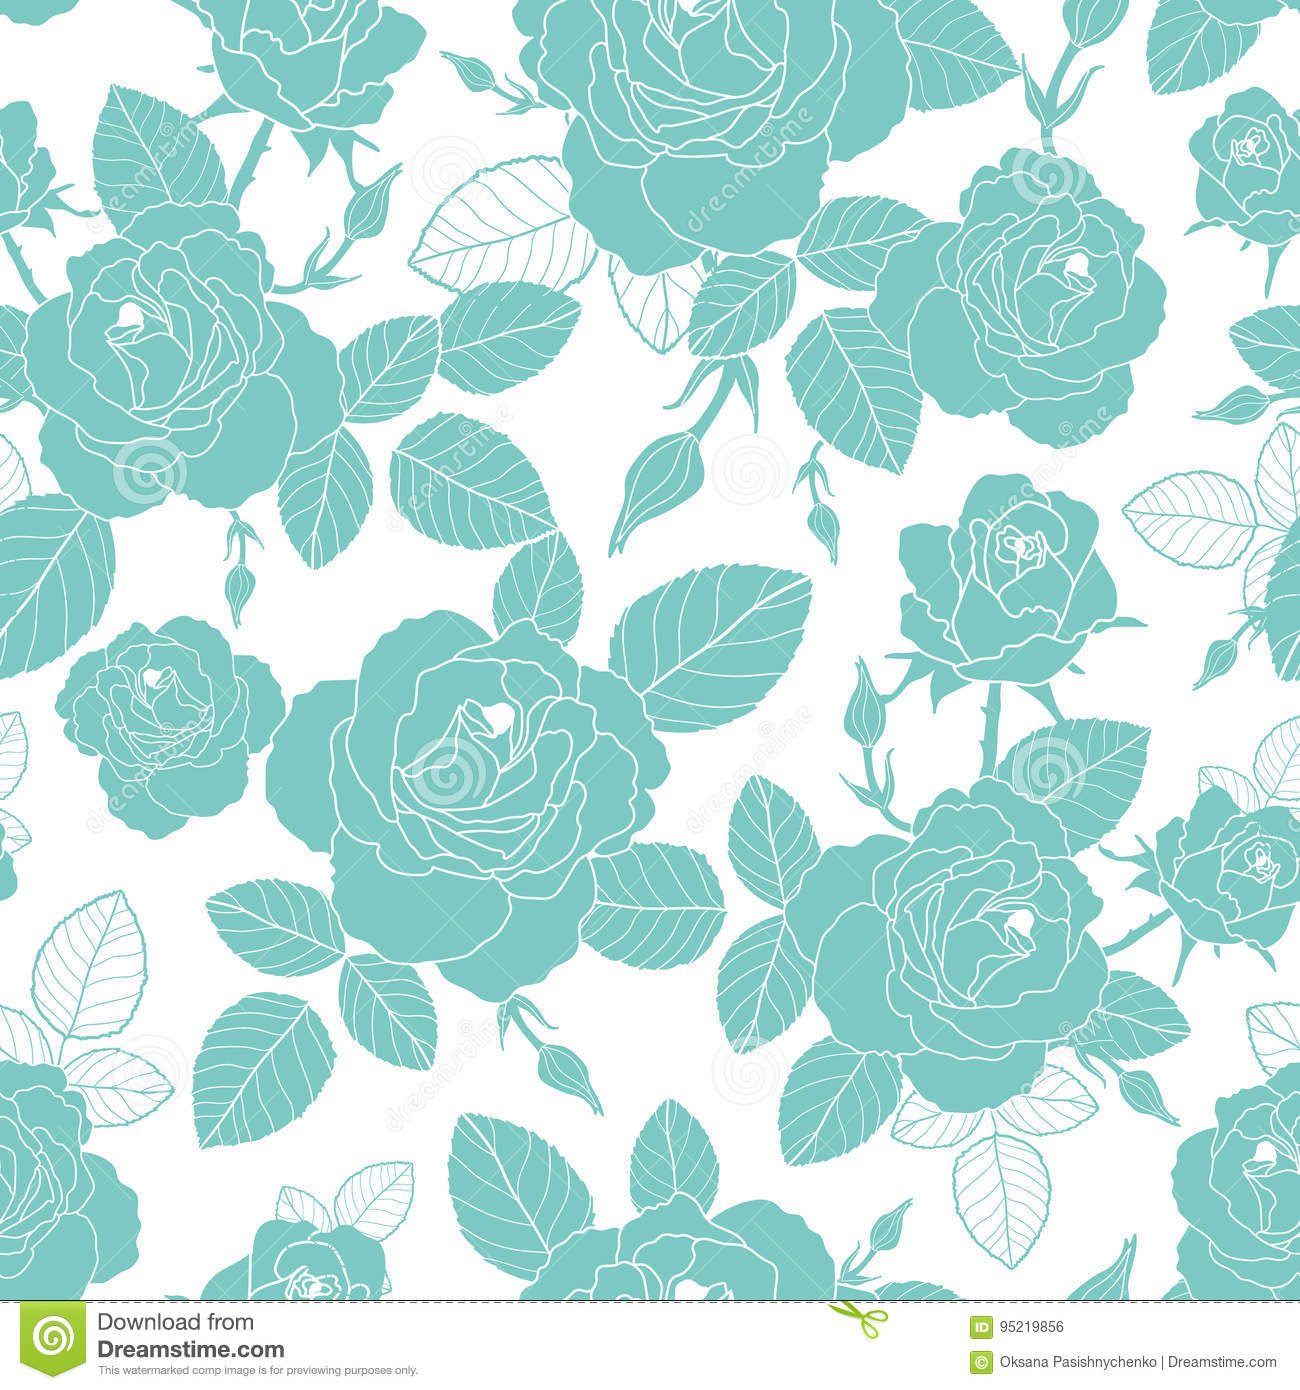 Vector Vintage Light Blue And White Roses And Leaves Seamless Repeat